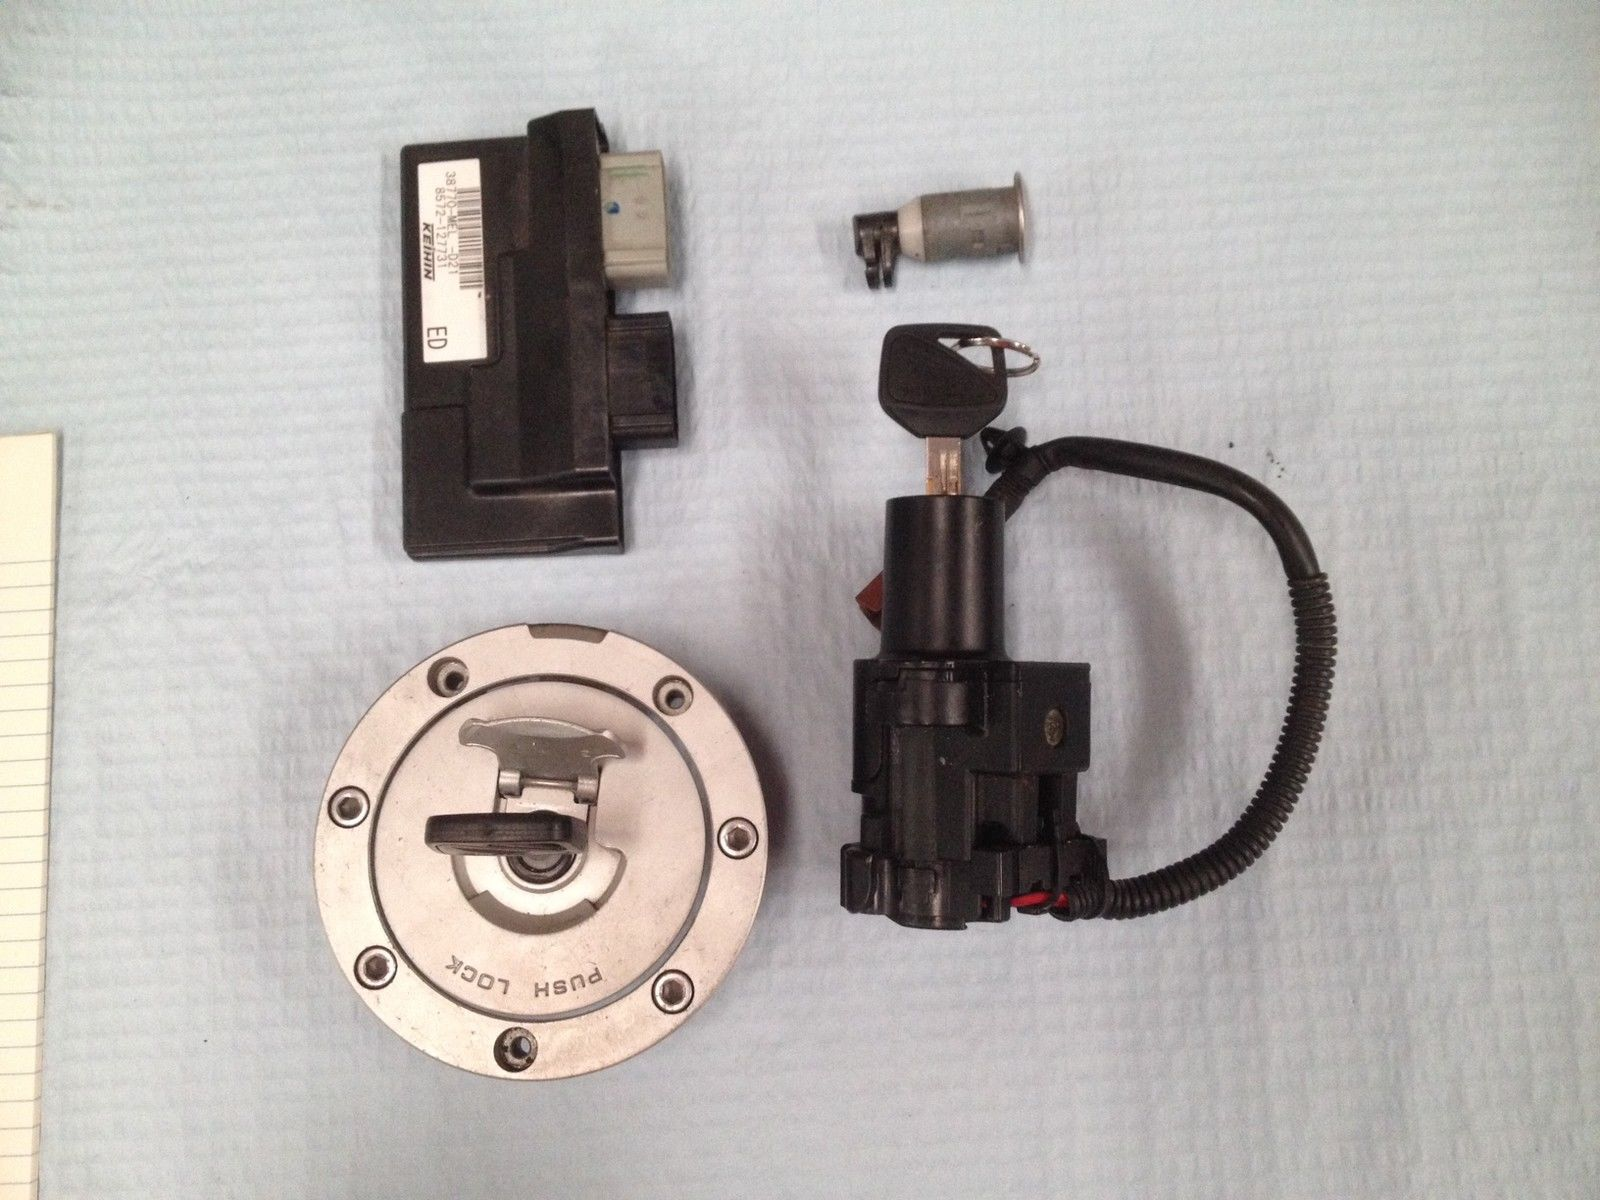 Honda CBR1000RR 06-07 ECU, ignition and tank lock with coded key HISS  CBR1000